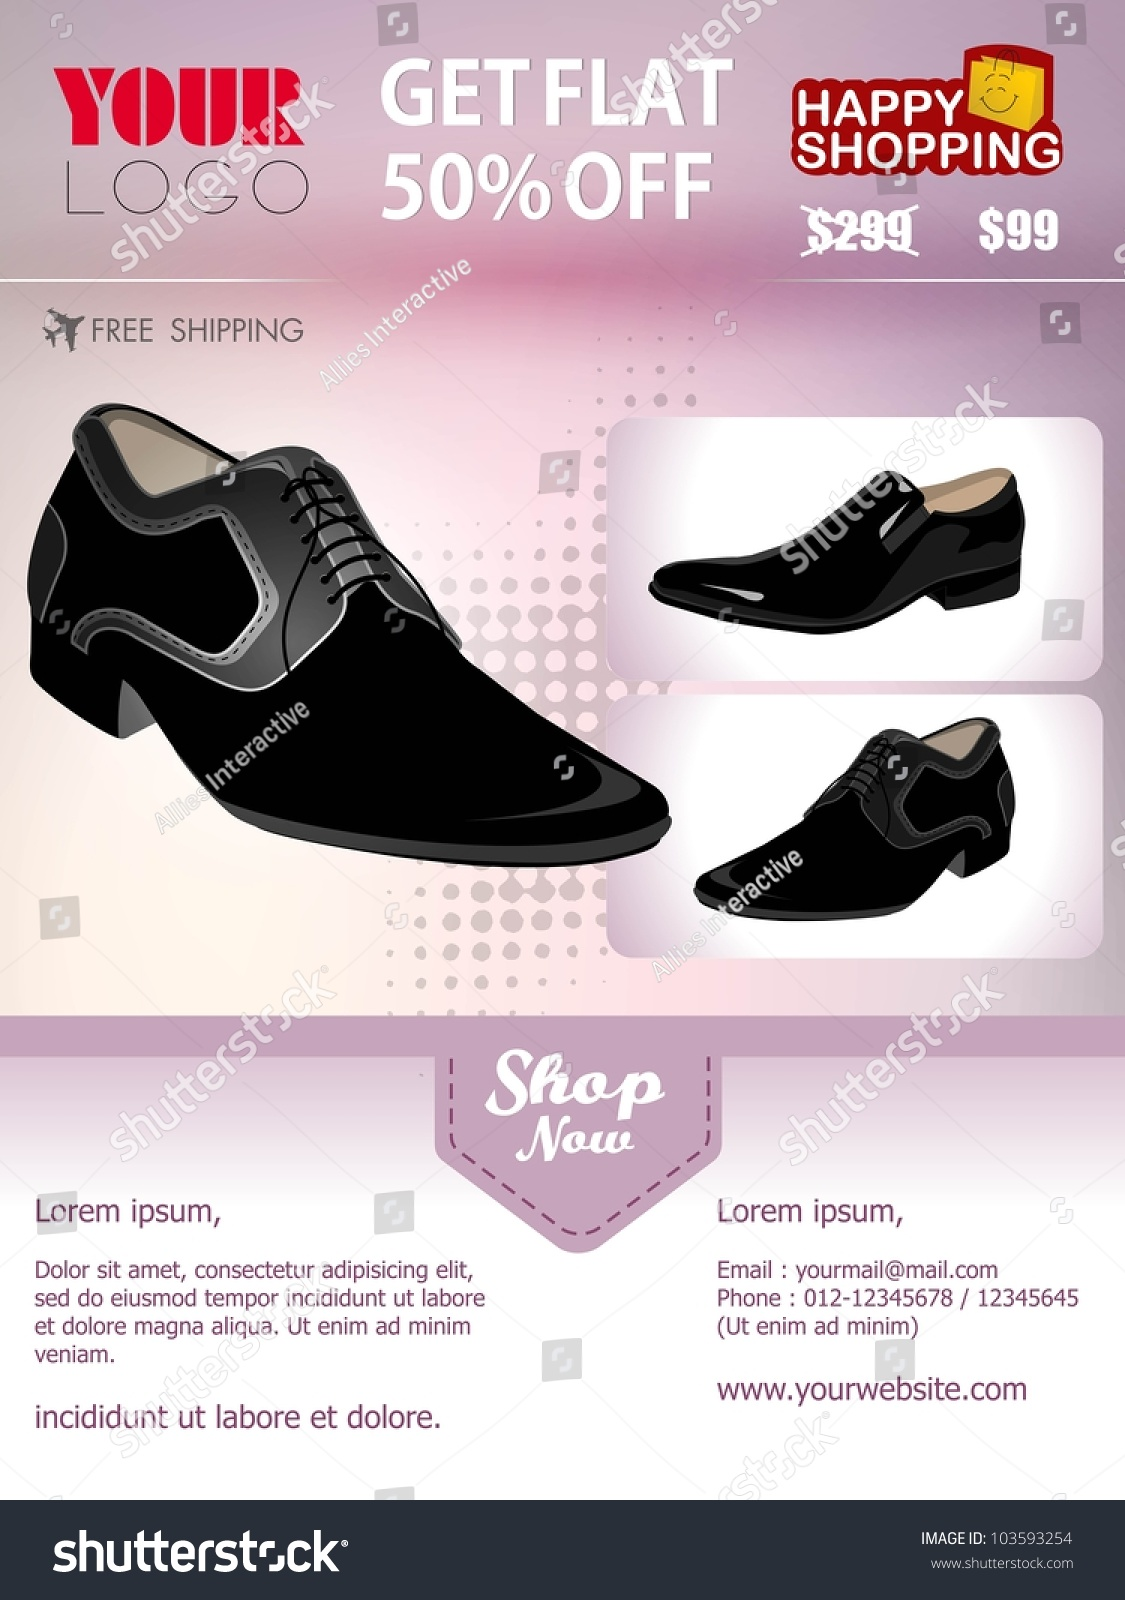 professional product flyer banner template mans stock vector professional product flyer or banner template of man s shoe attractive discount offers for promotion